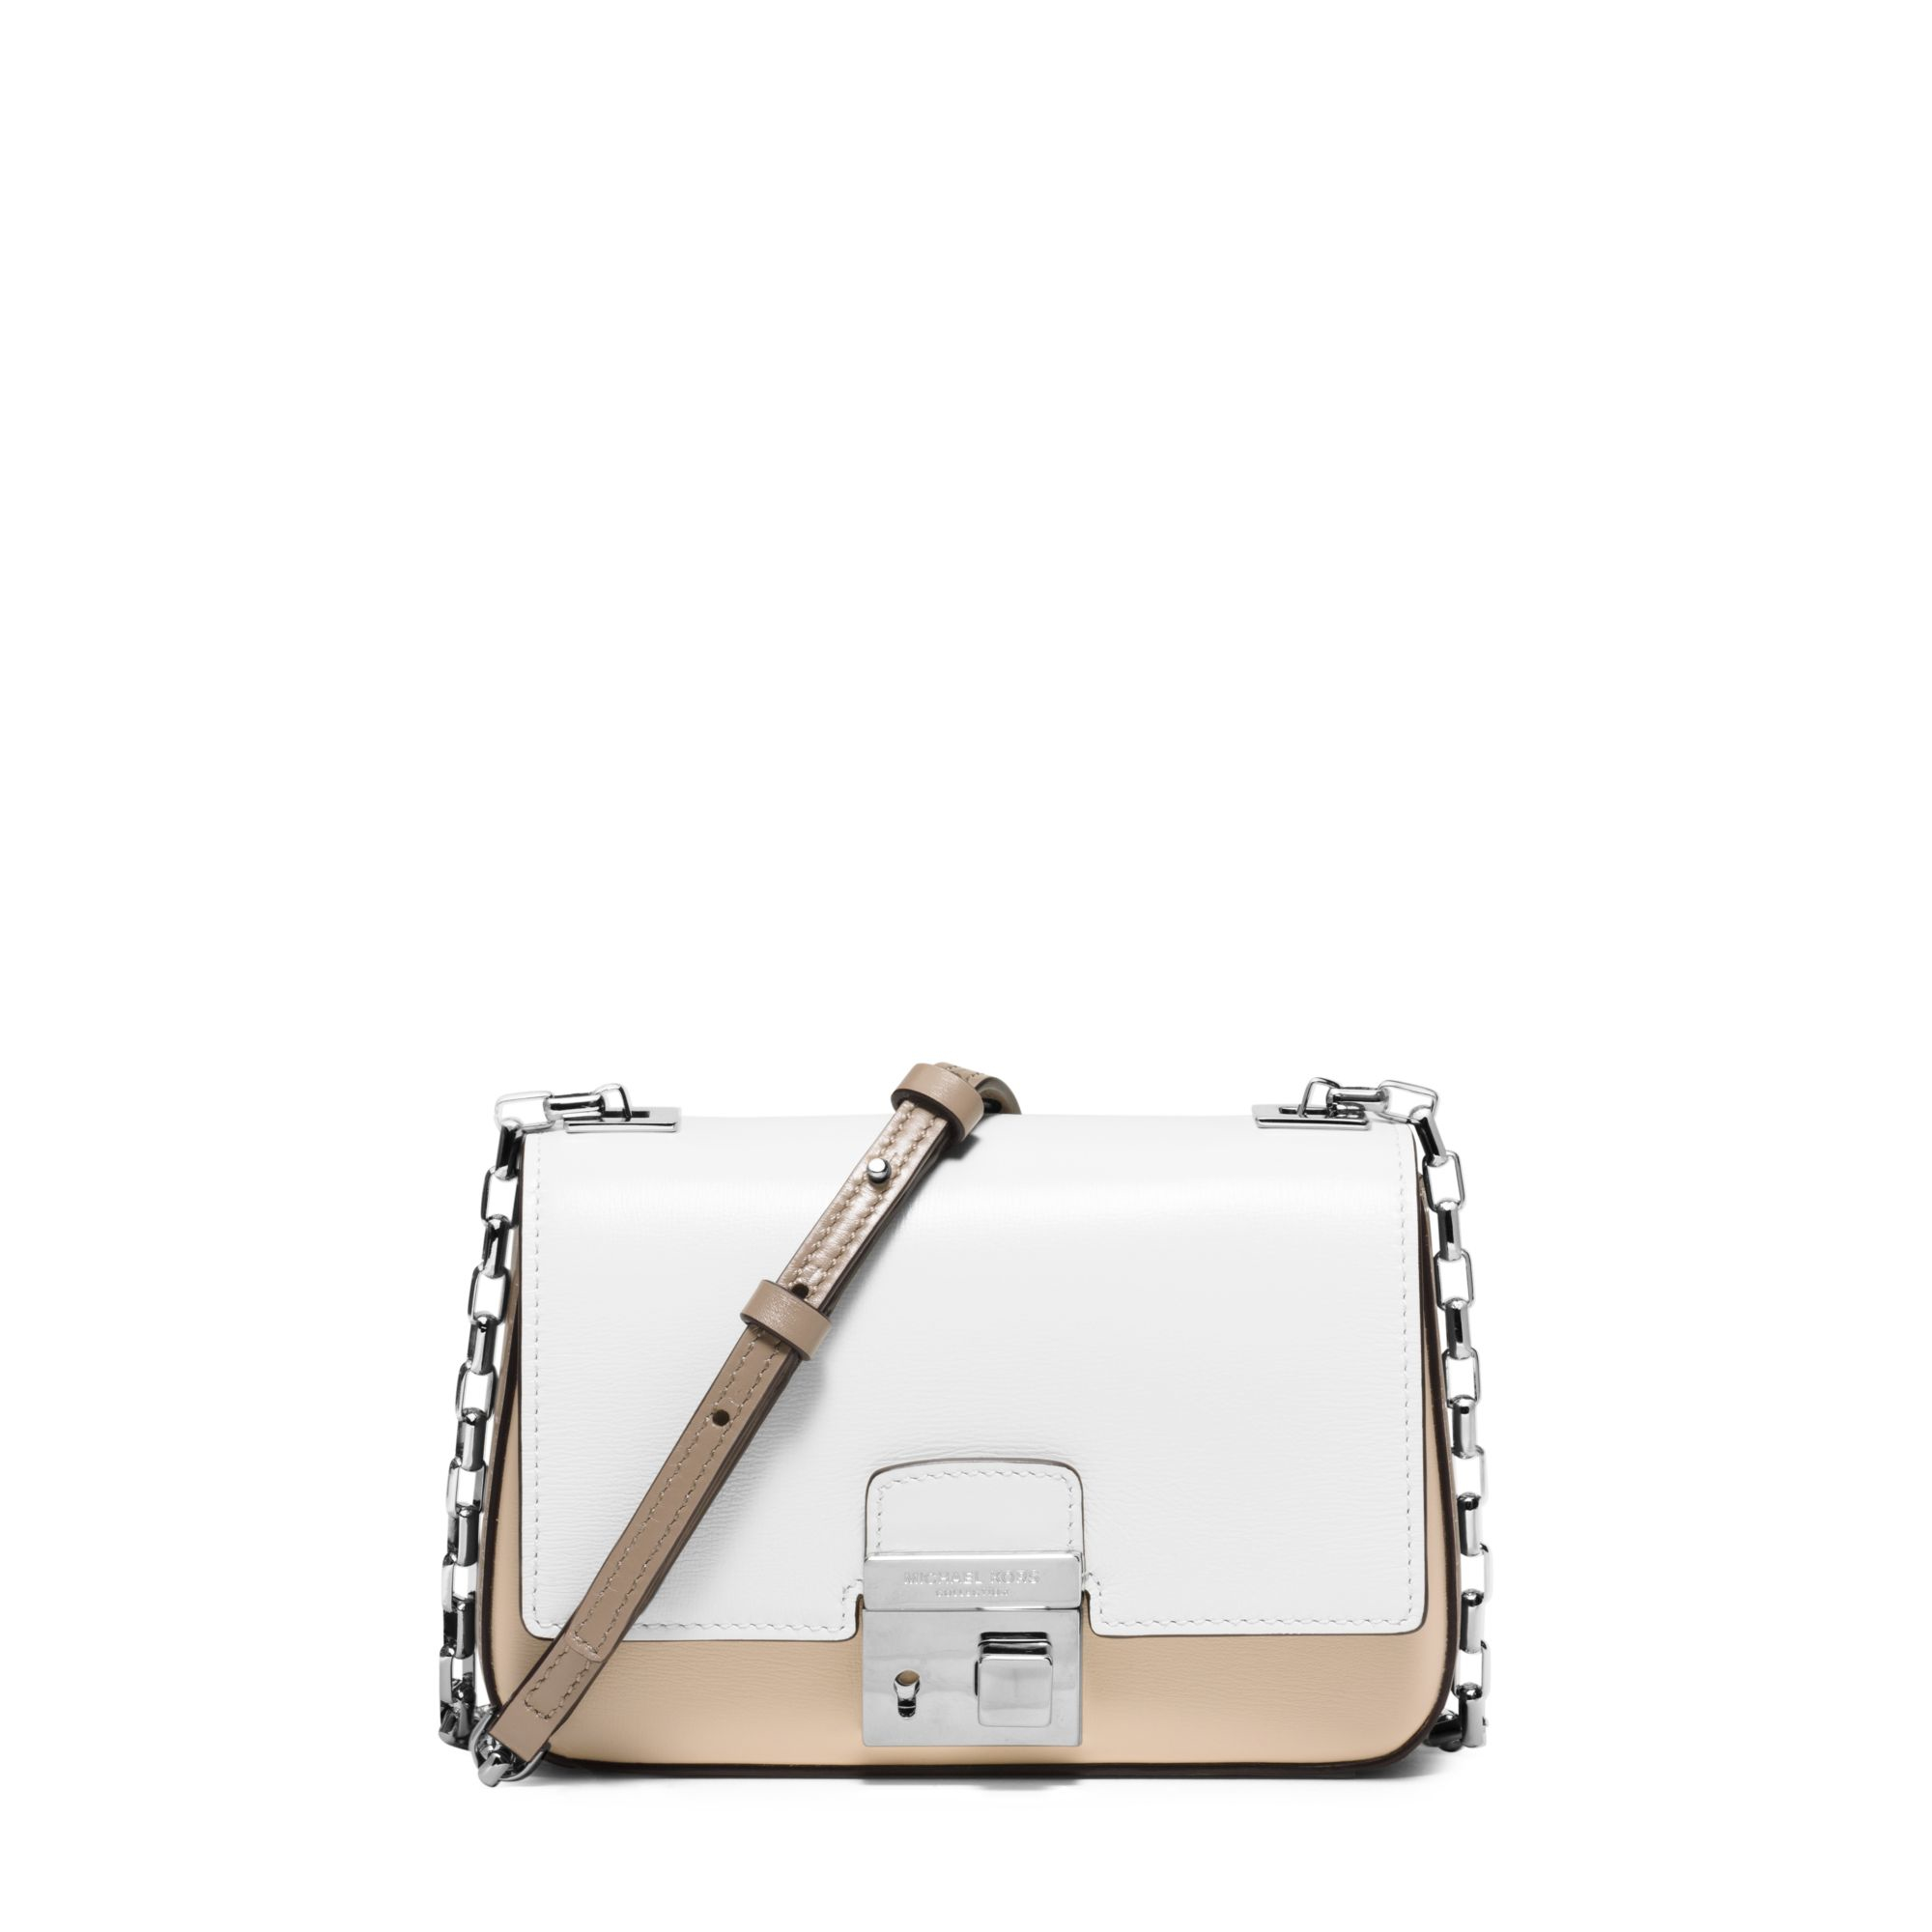 a048775baa3 Lyst - Michael Kors Gia Small Color-block Leather Shoulder Bag in ...